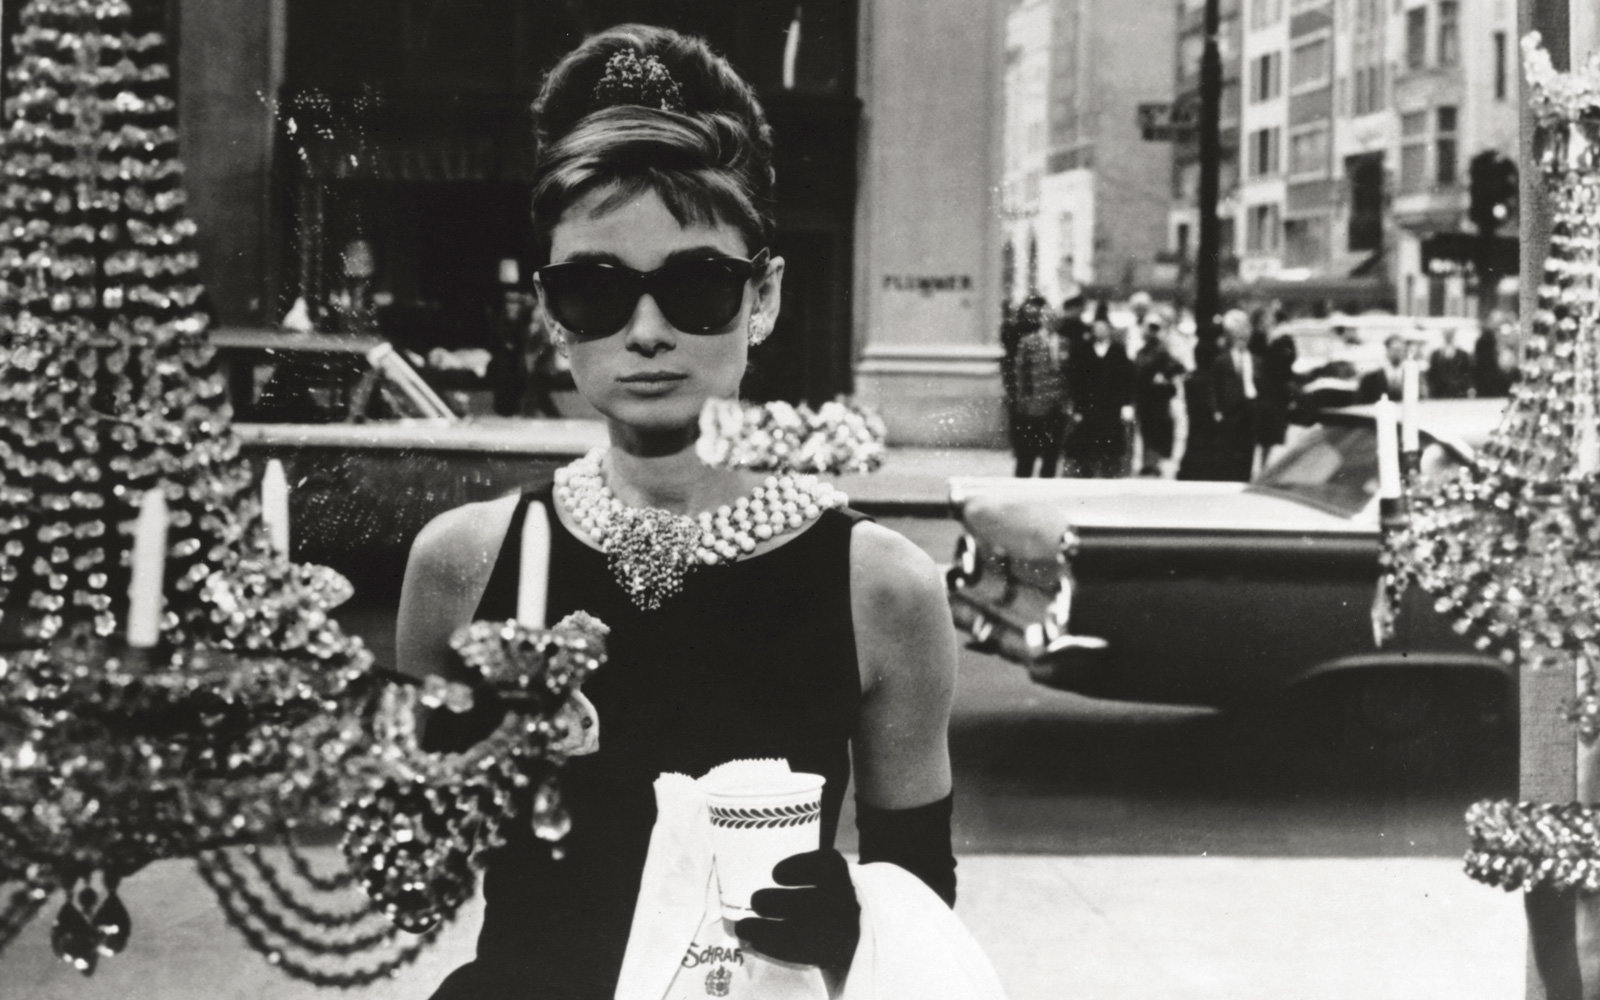 Now you can actually eat breakfast at Tiffany's.